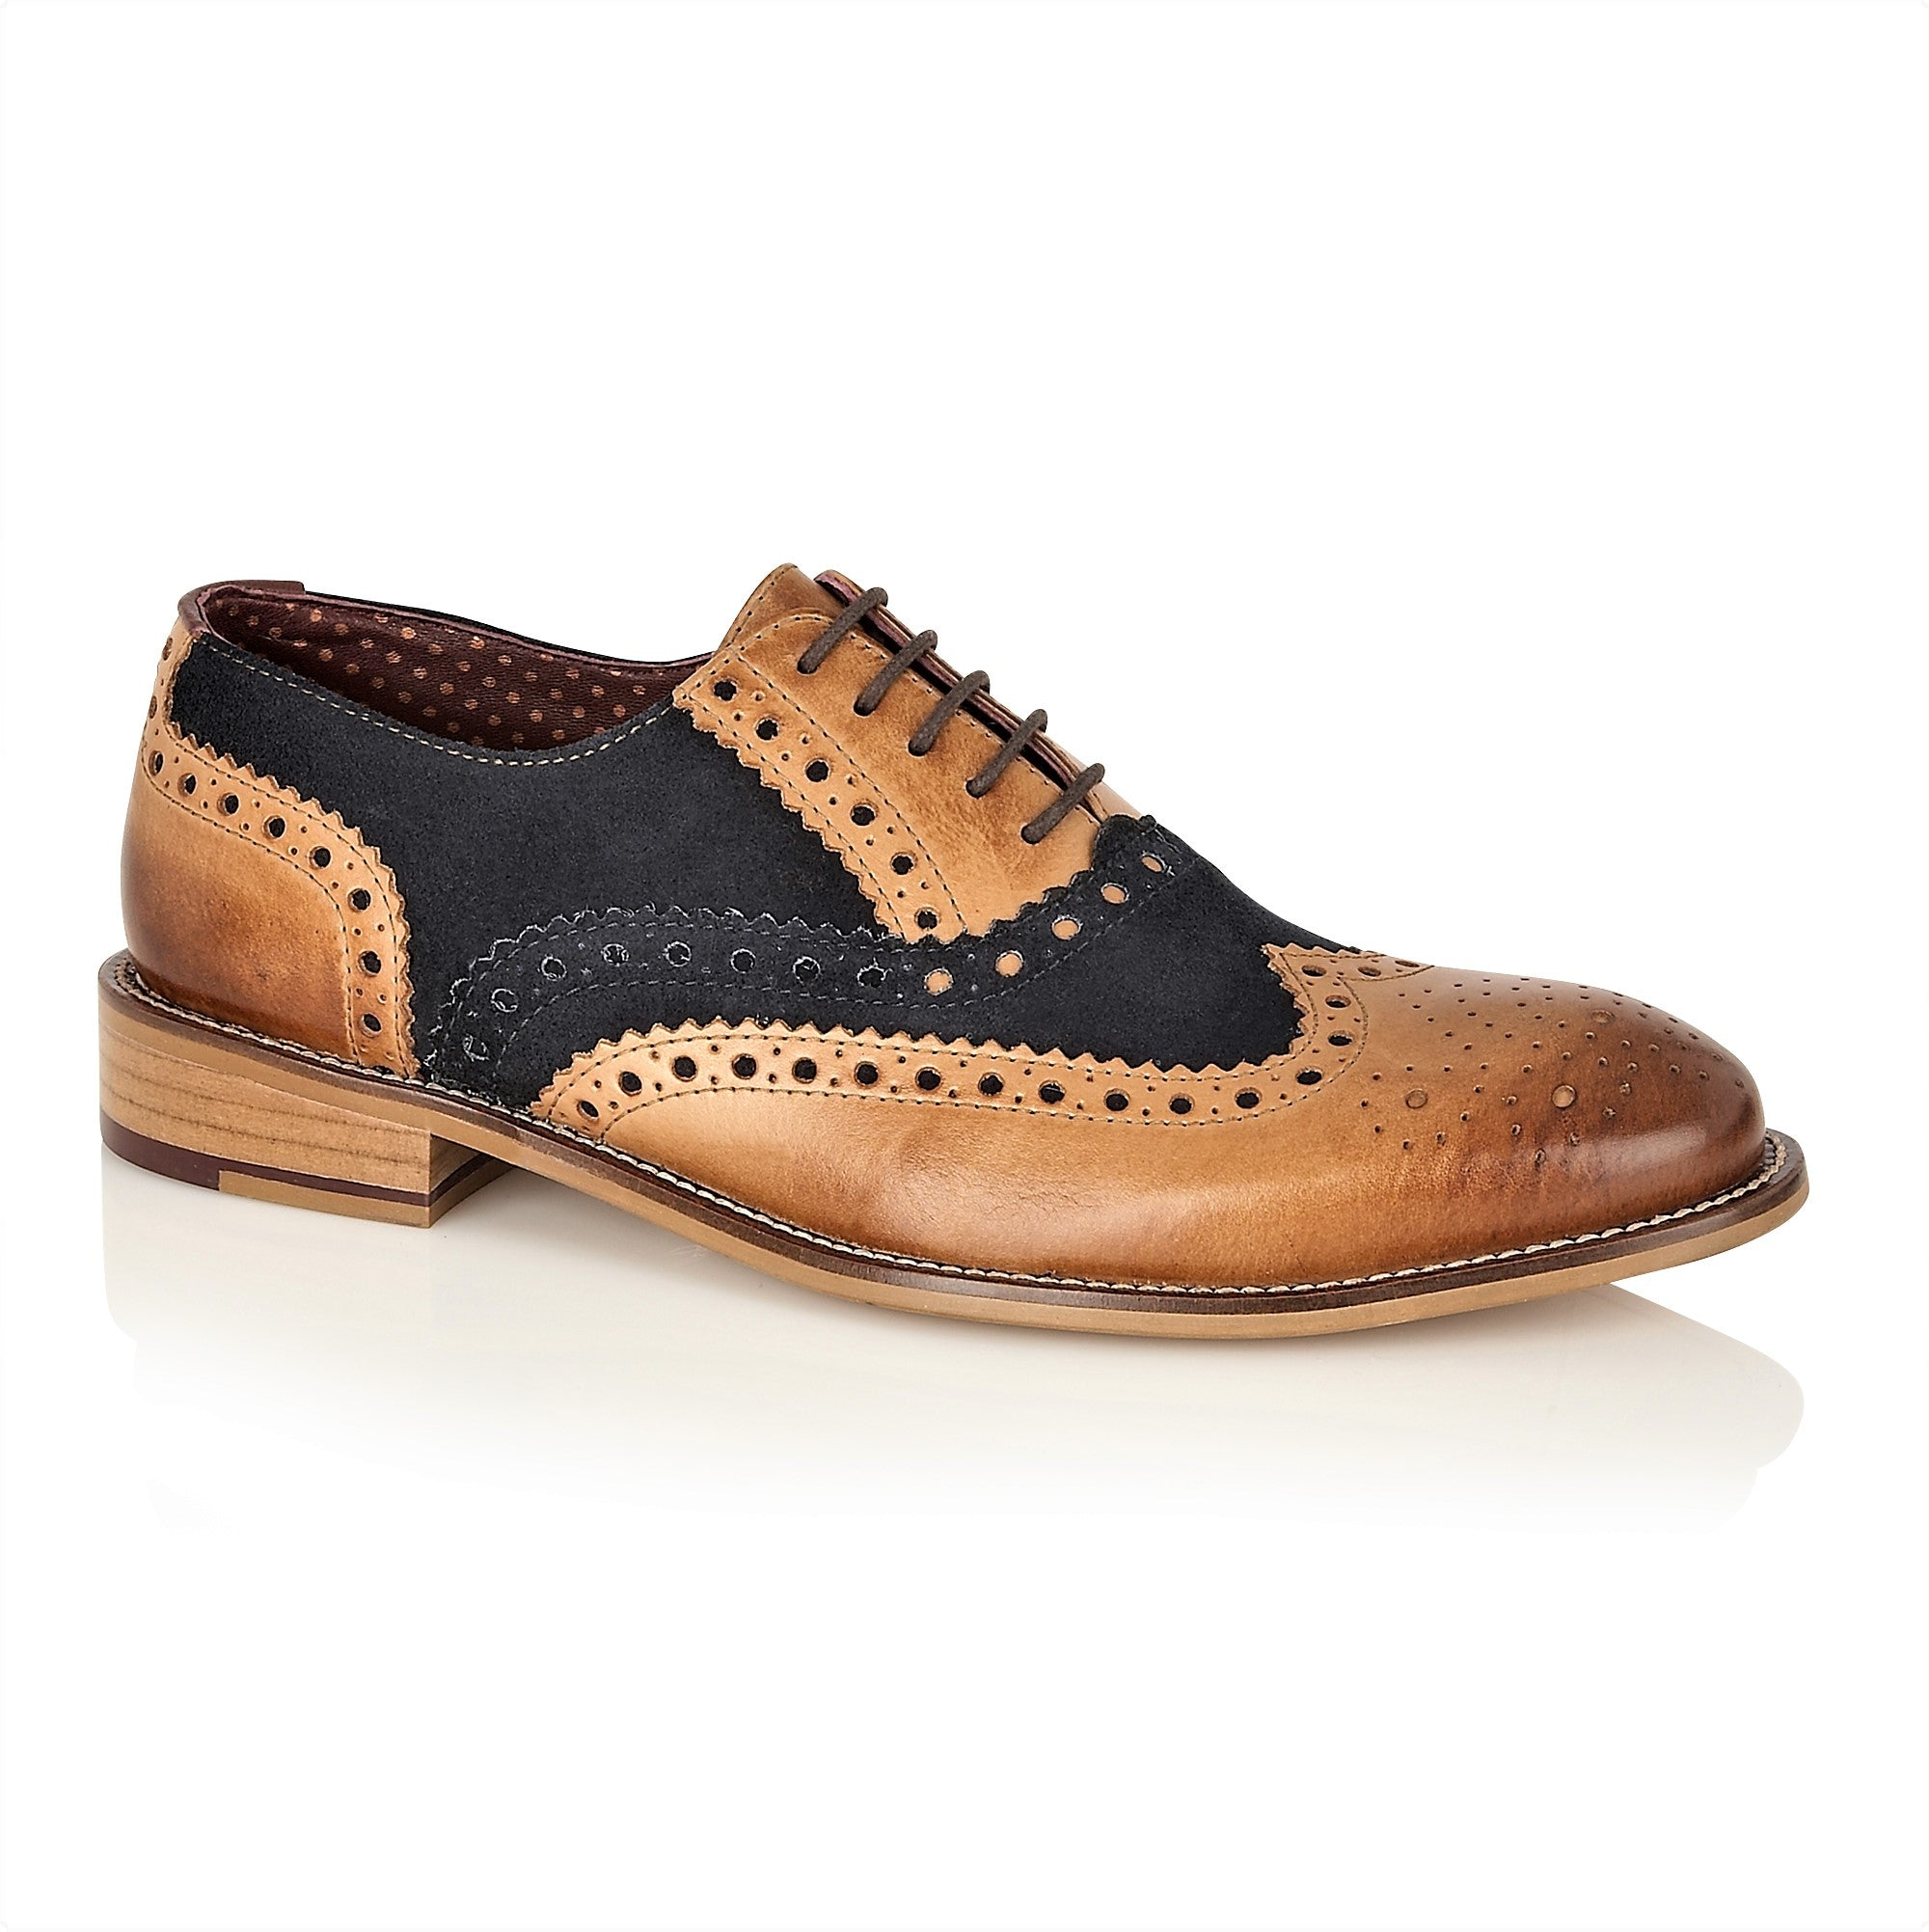 Gatsby Leather Brogue Tan/Navy, Shoes, London Brogues  - London Brogues